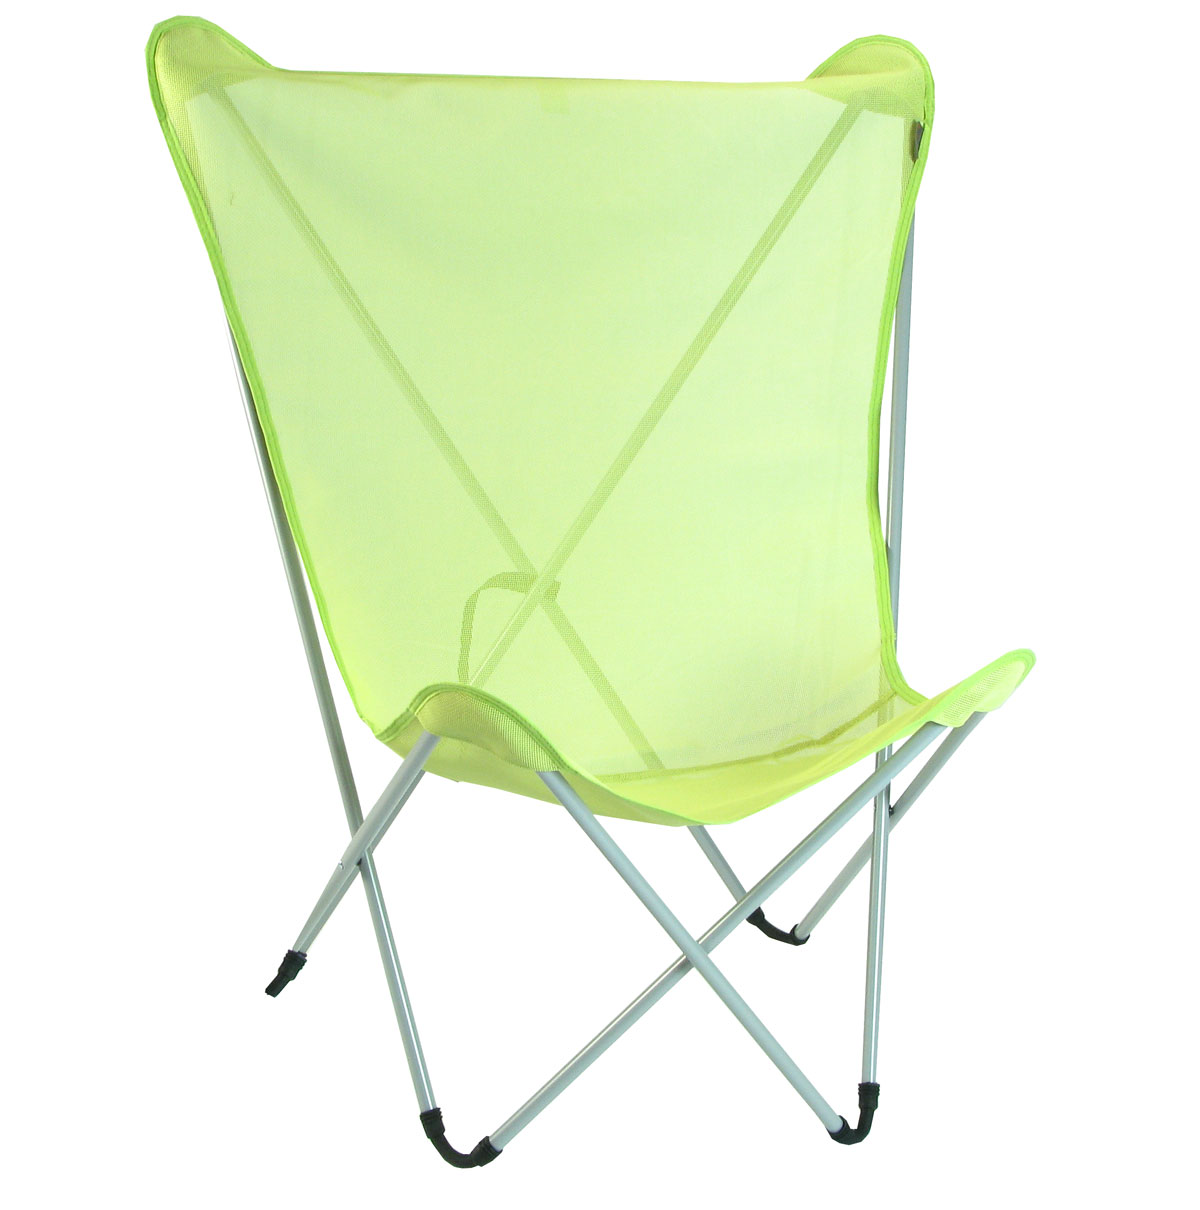 Camping Chair Furniture Sets Table Bed Lounge